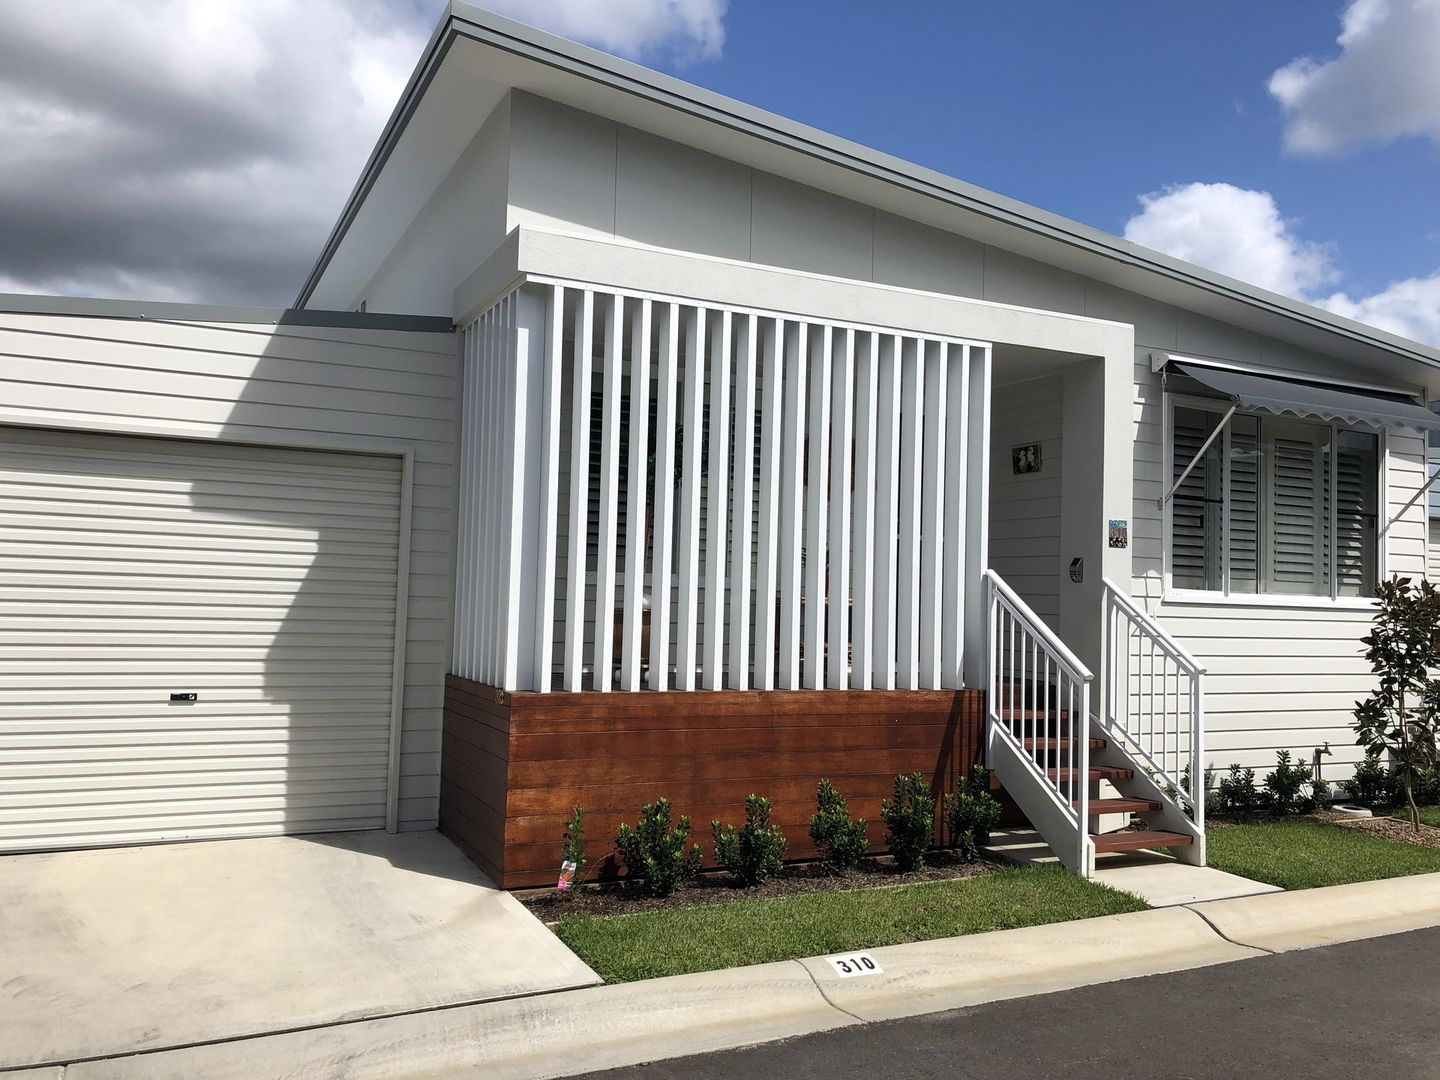 310/4 Gimberts Road, Morisset NSW 2264 - House For Sale | Domain